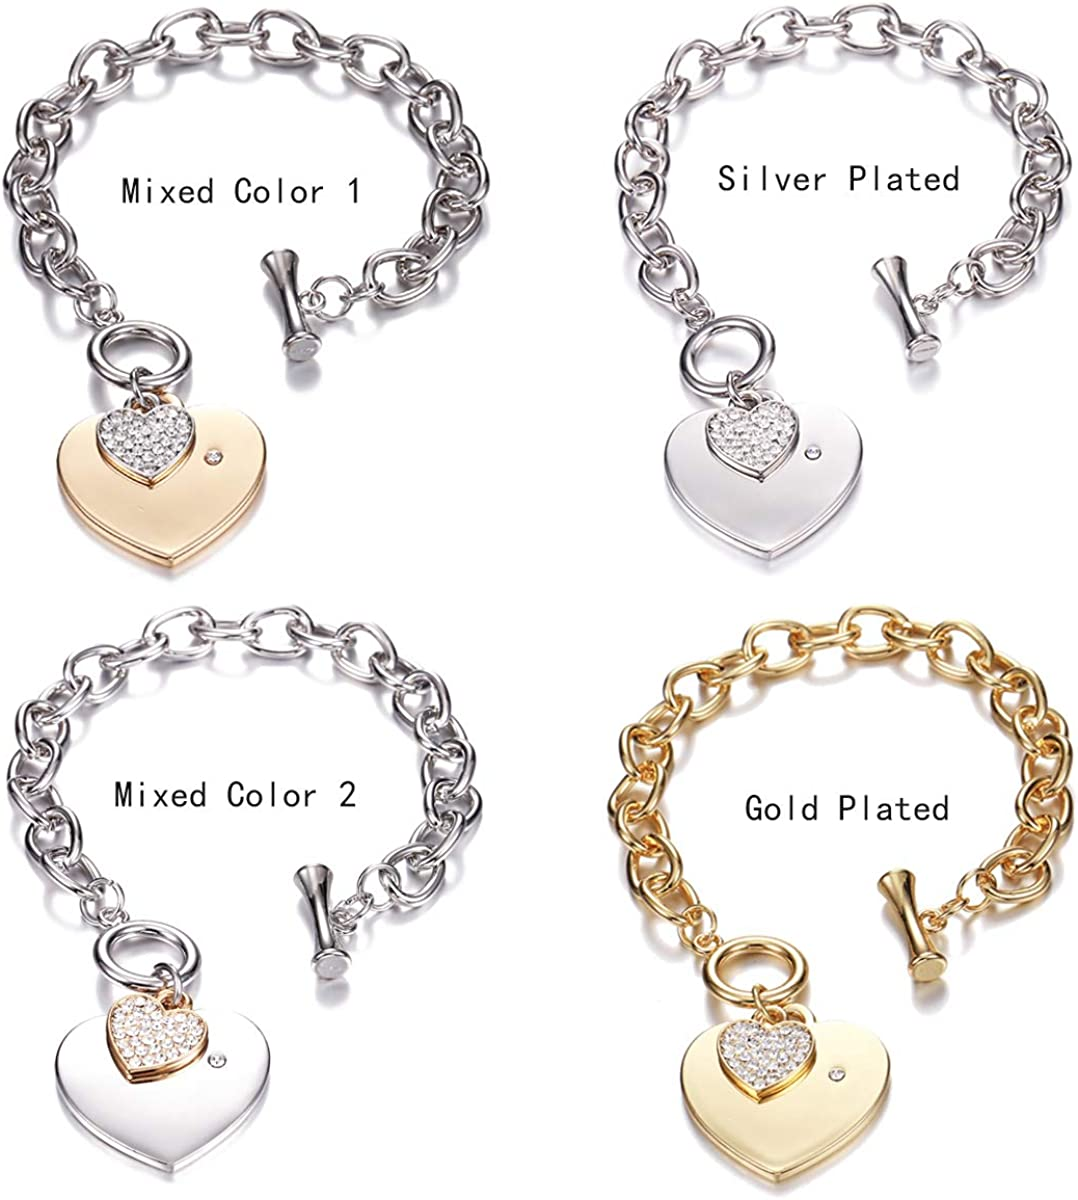 PJ Heart Crystal Charm Bracelet for Women Girls Toggle Clasp High Polished Trendy Love Heart-Shaped Link Chain Charms Bracelets Jewelry